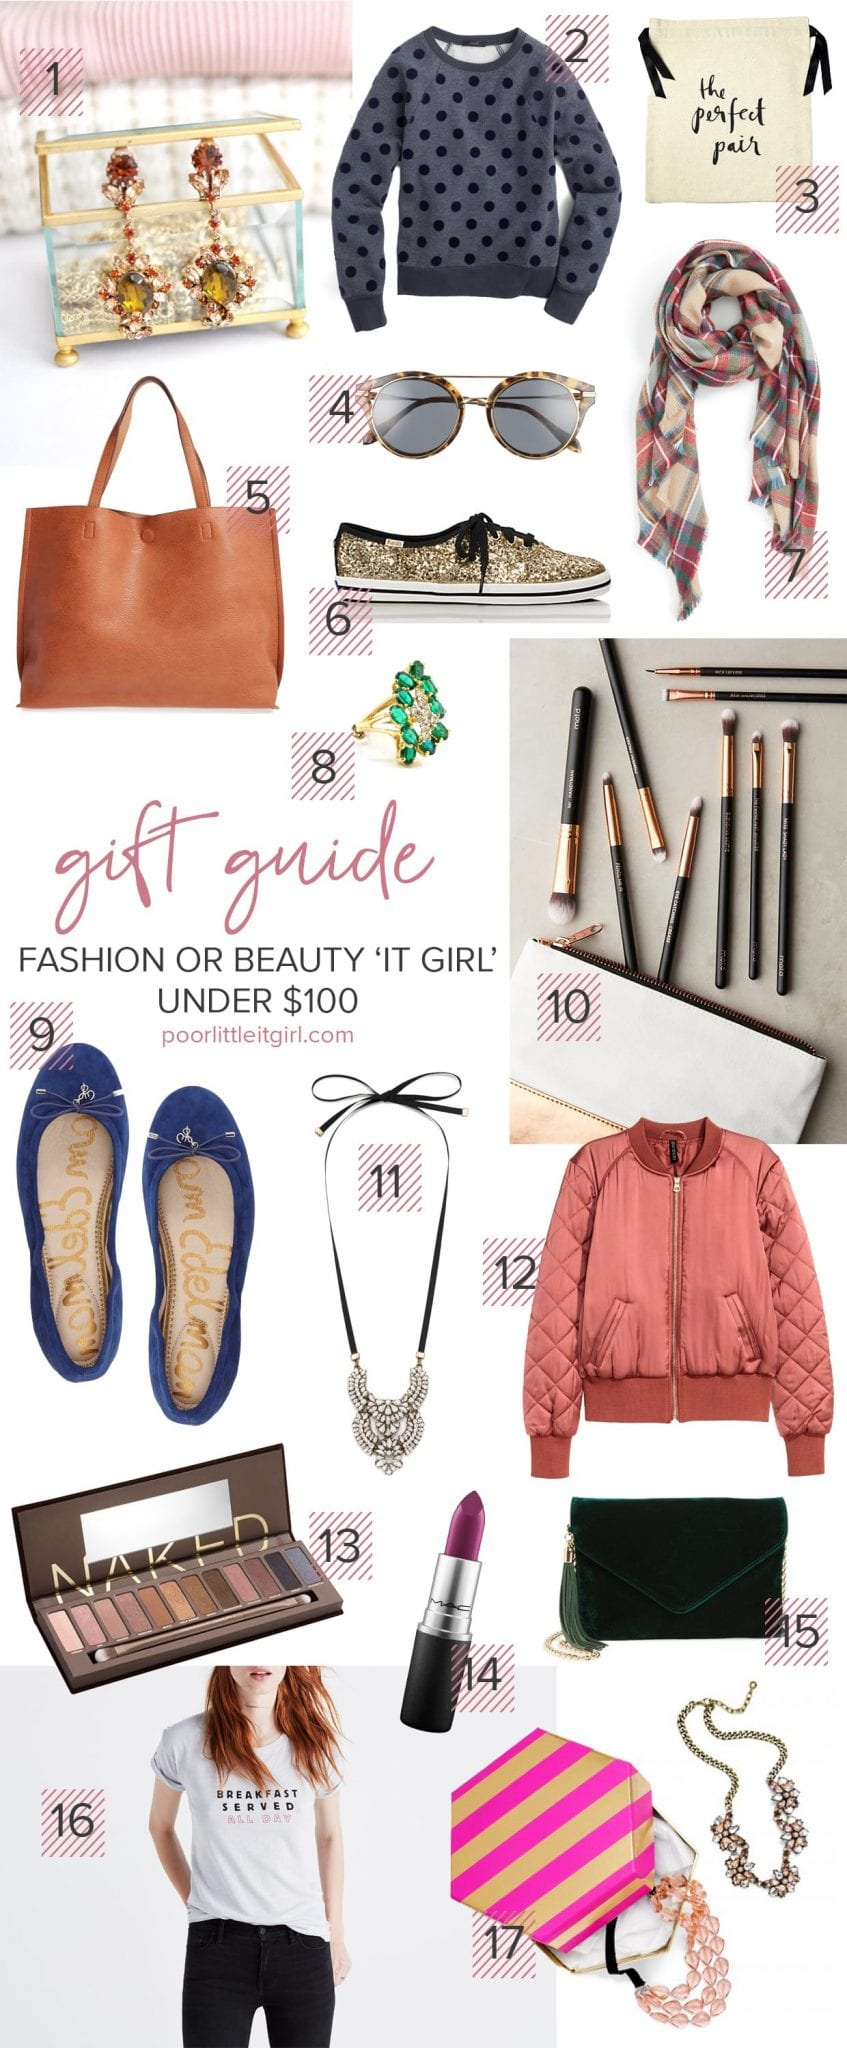 Beauty And Fashion Girl Gift Guide - Poor Little It Girl